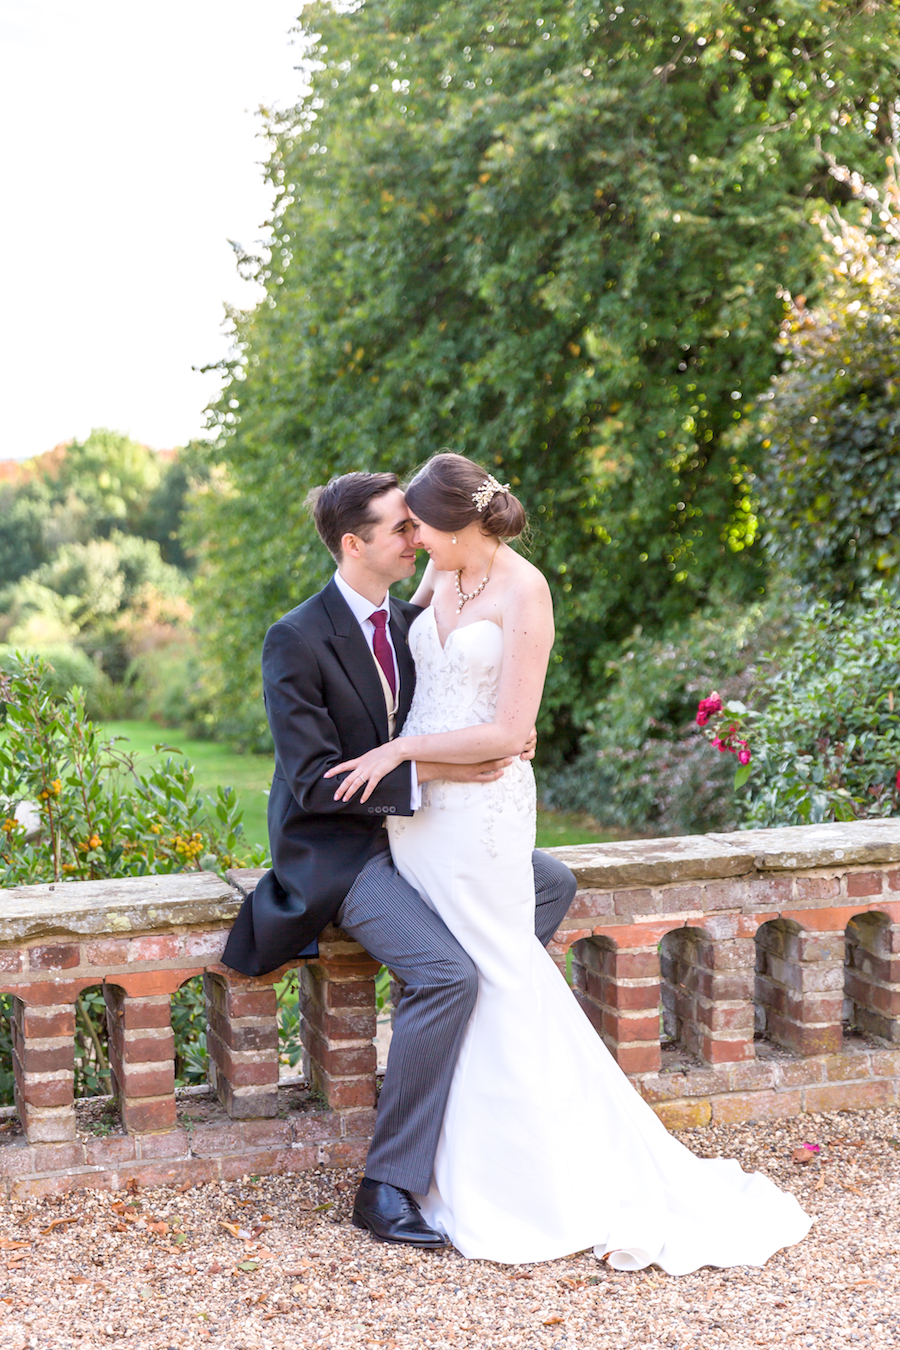 Real wedding by Ayshea Goldberg Photography at Layer Marney Tower (32)